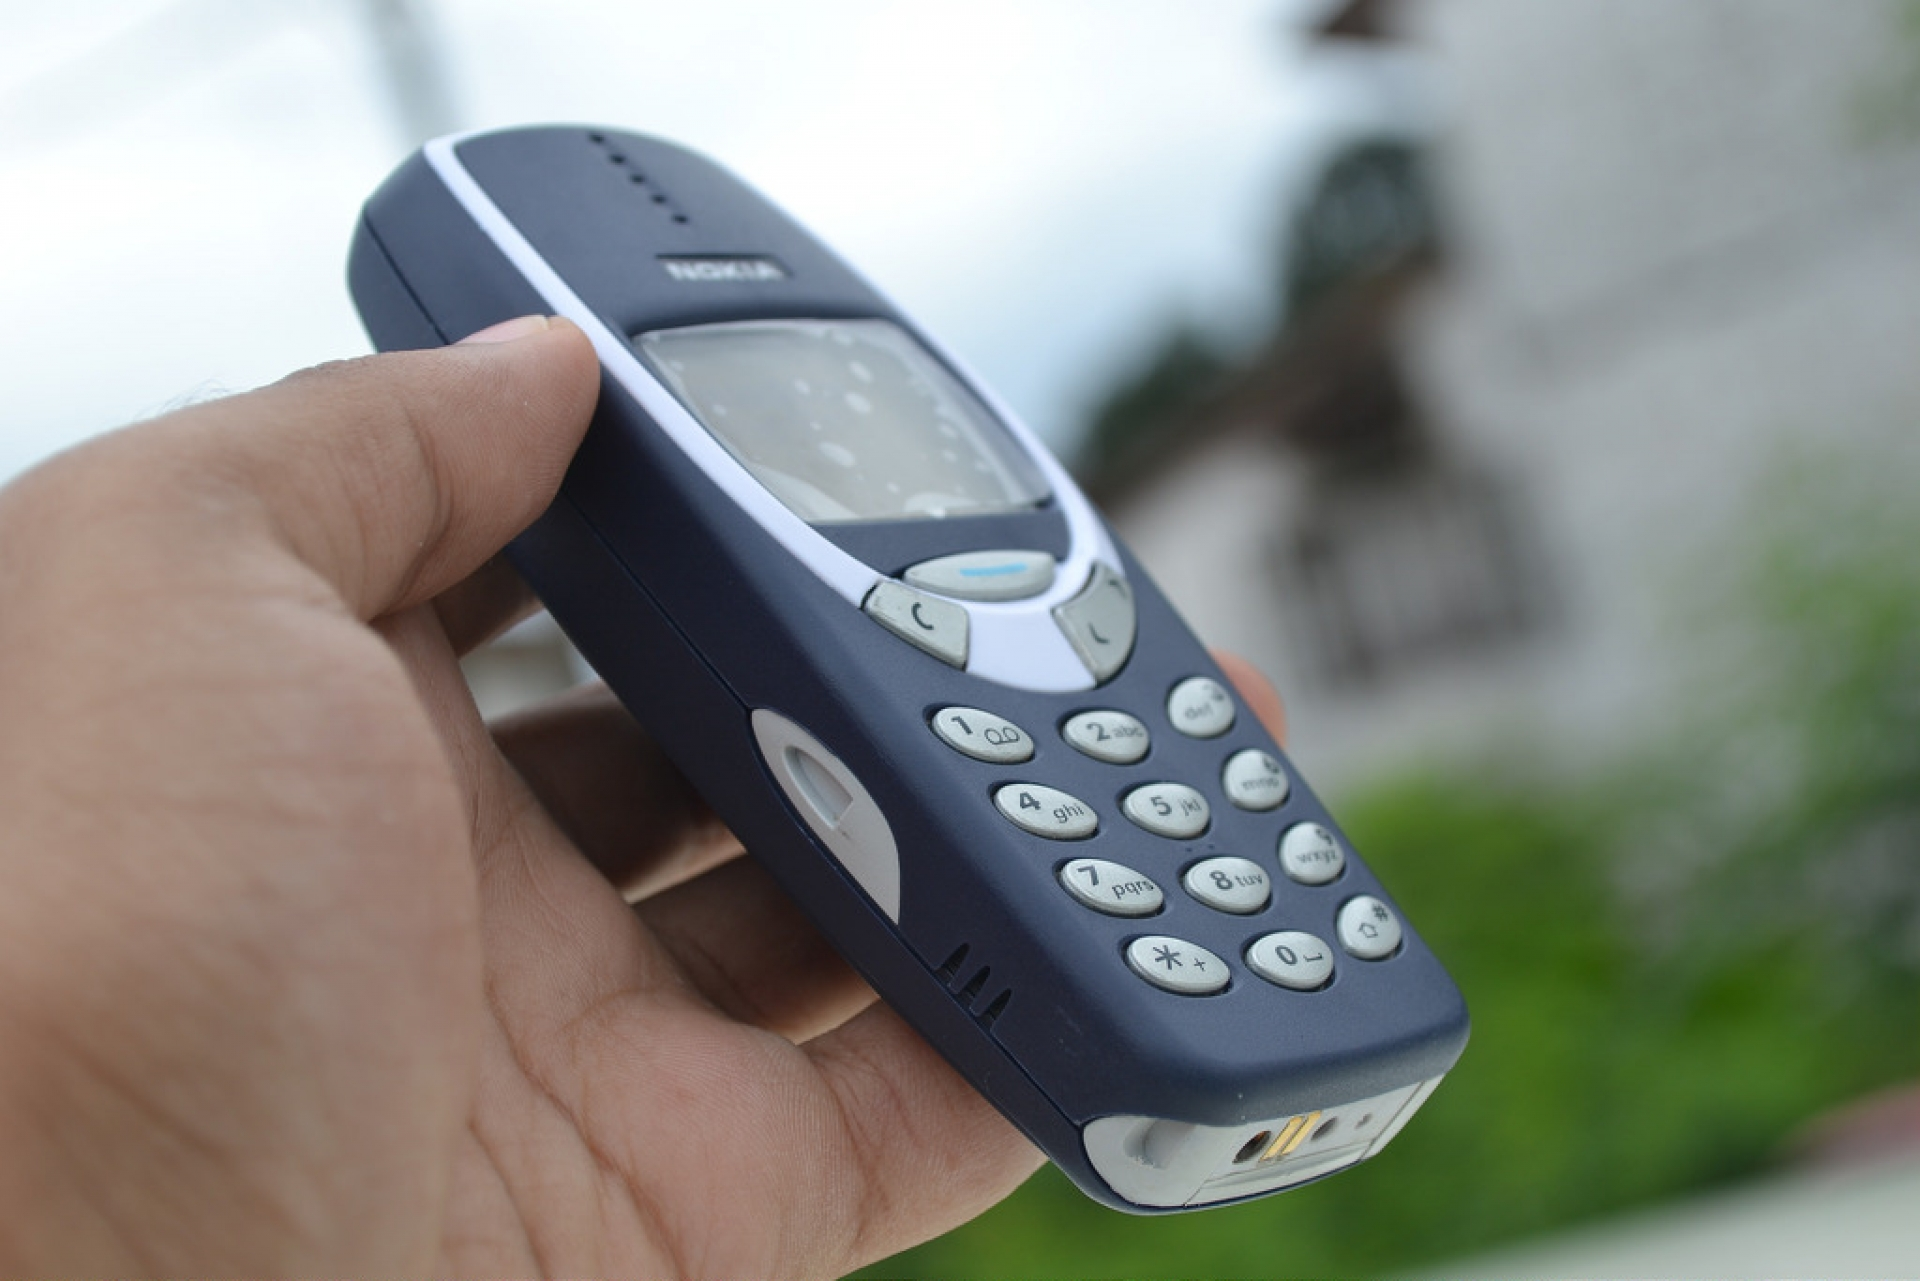 New Nokia 3310: The Good, The Bad and The Worst